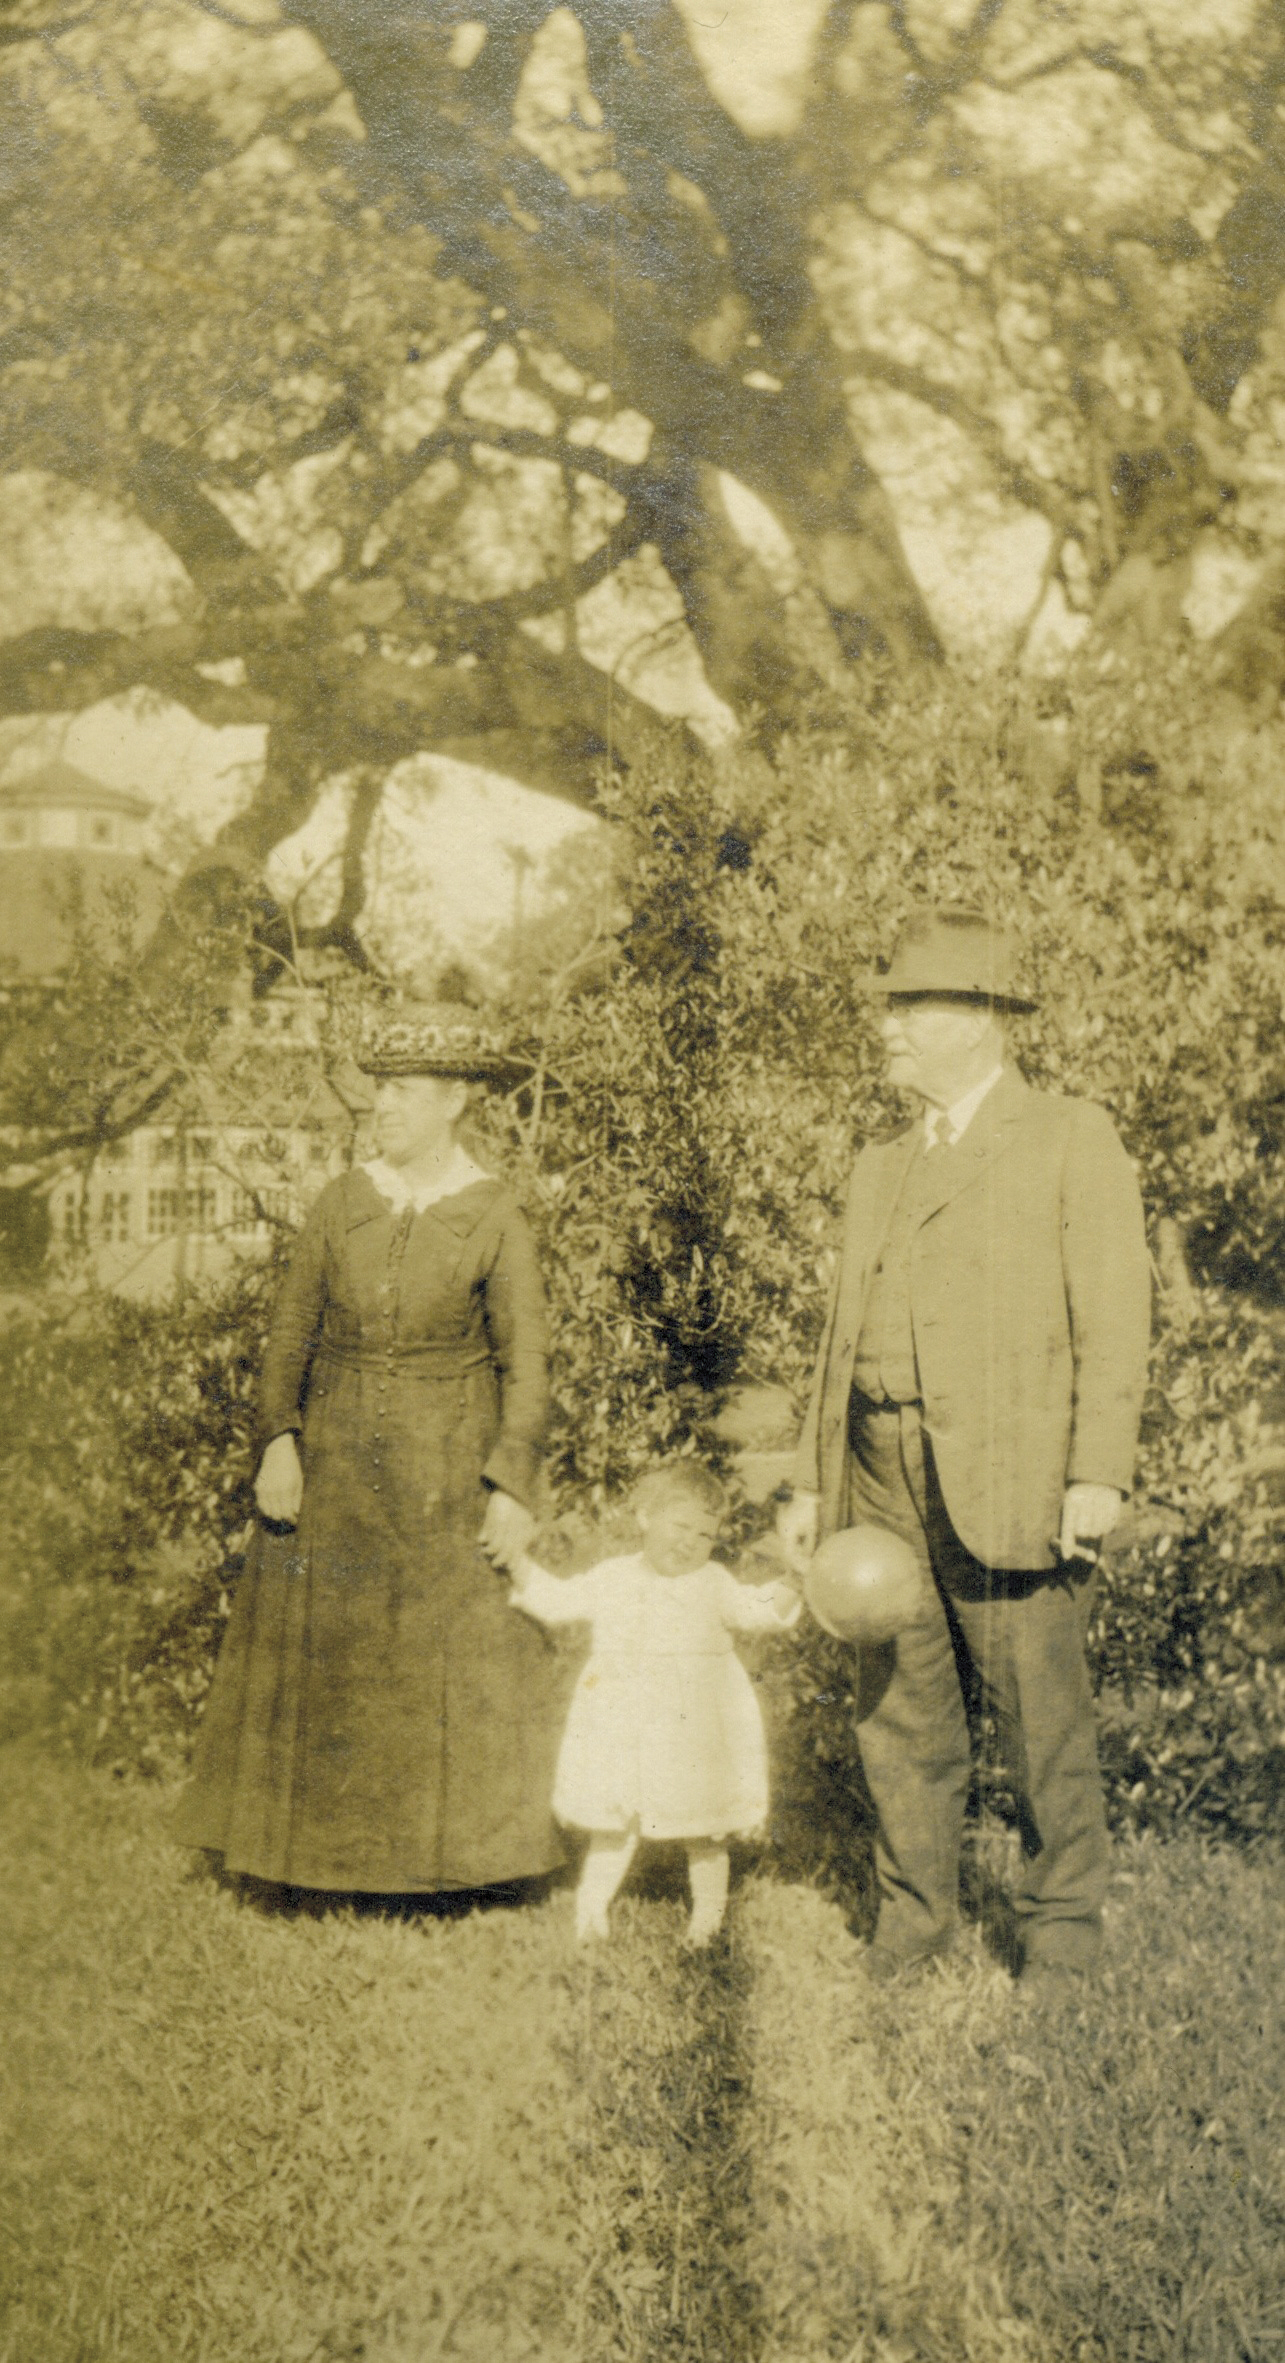 The Liveliest Of Oaks: 300 Years of City Park